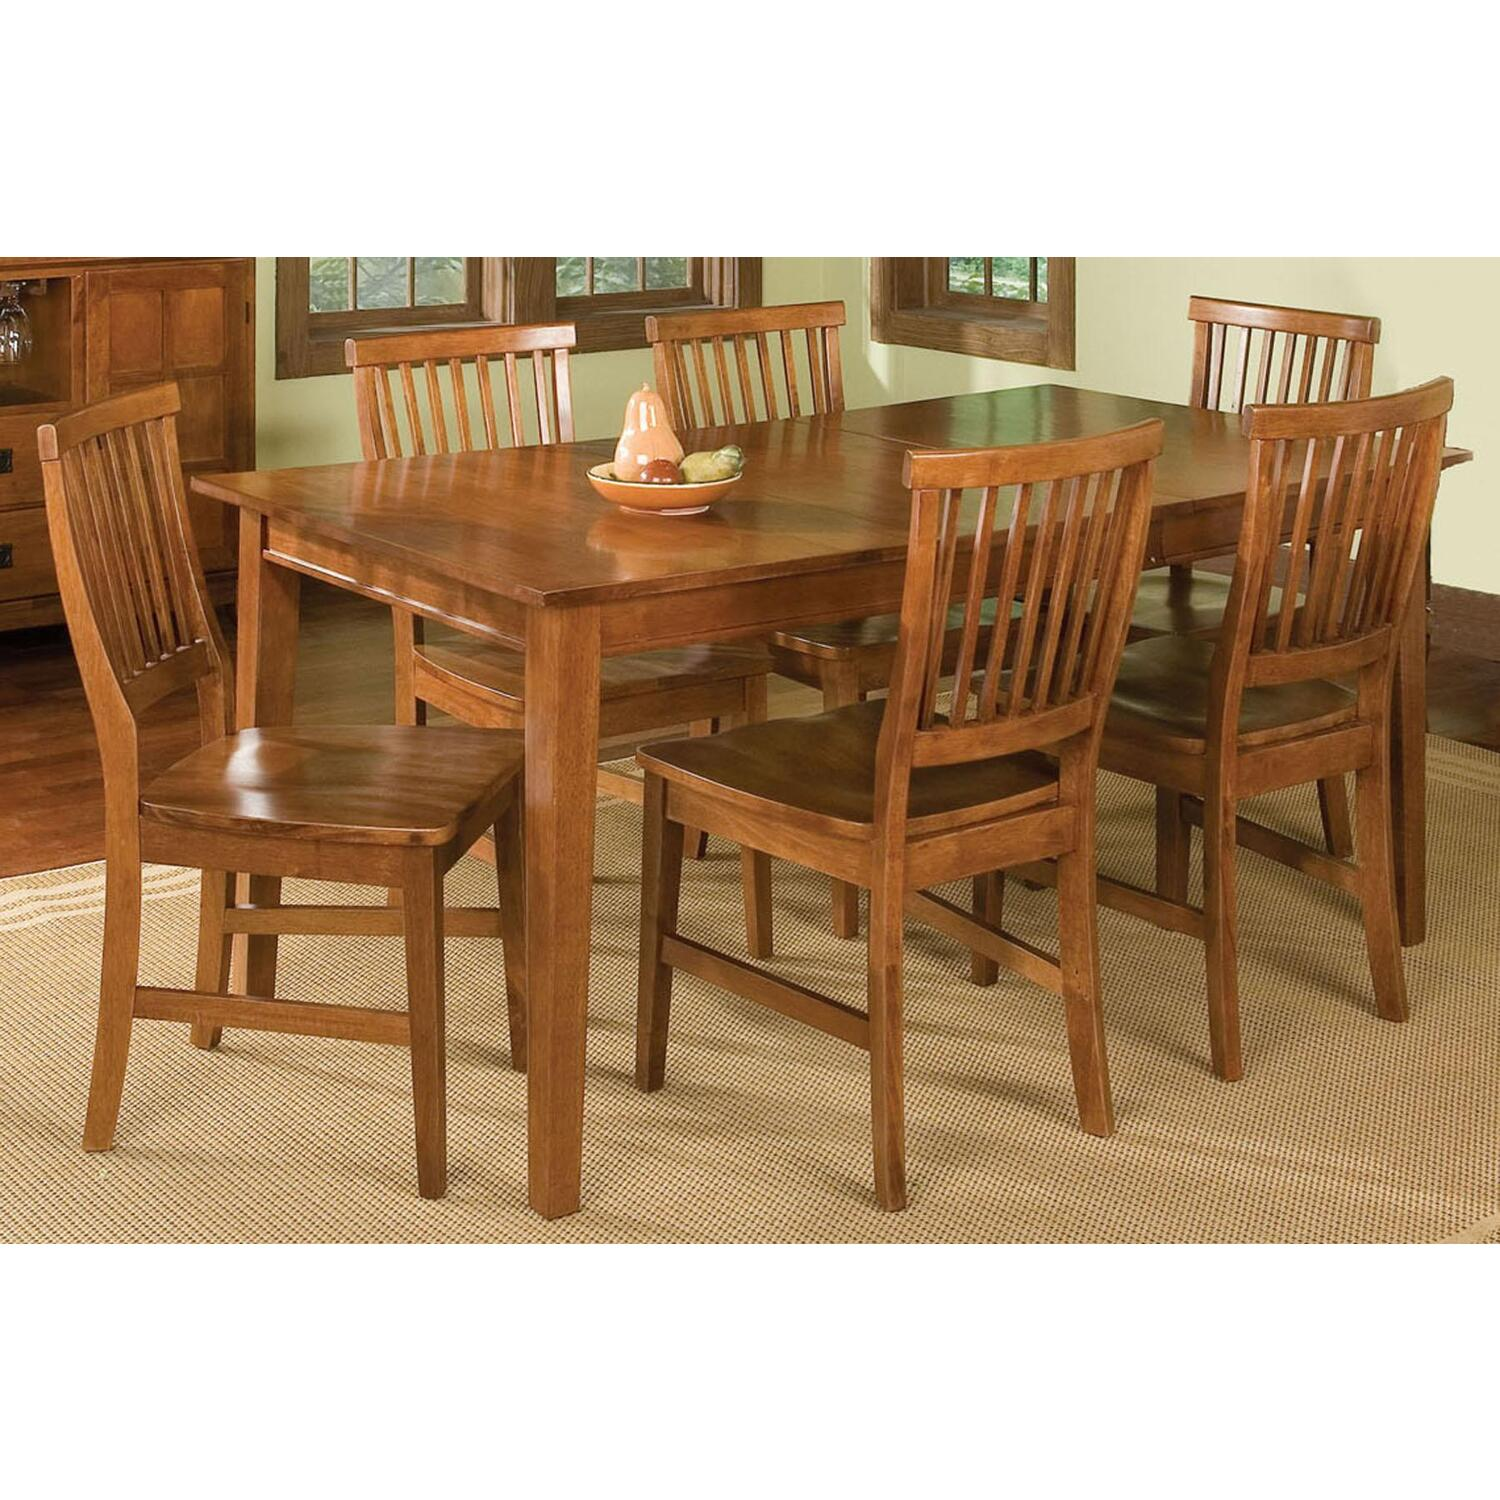 Arts And Crafts Dining Room: Home Styles 5180-319 Arts And Crafts 7 Piece Dining Set